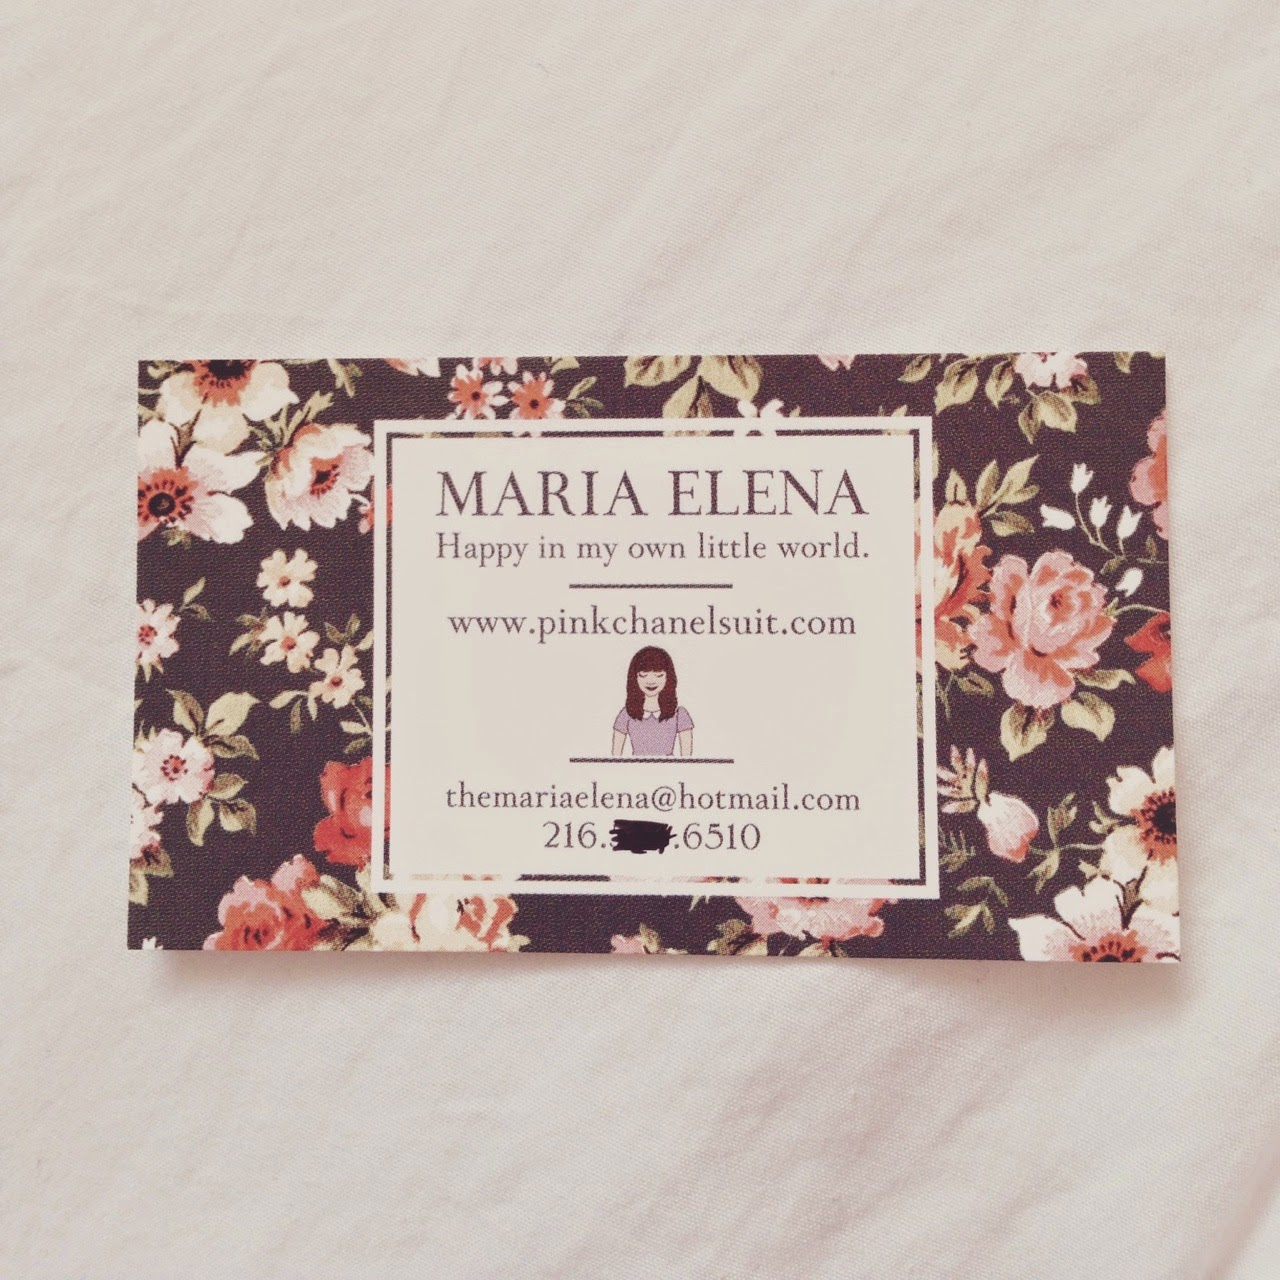 Why I Don T Have My Le On Business Cards